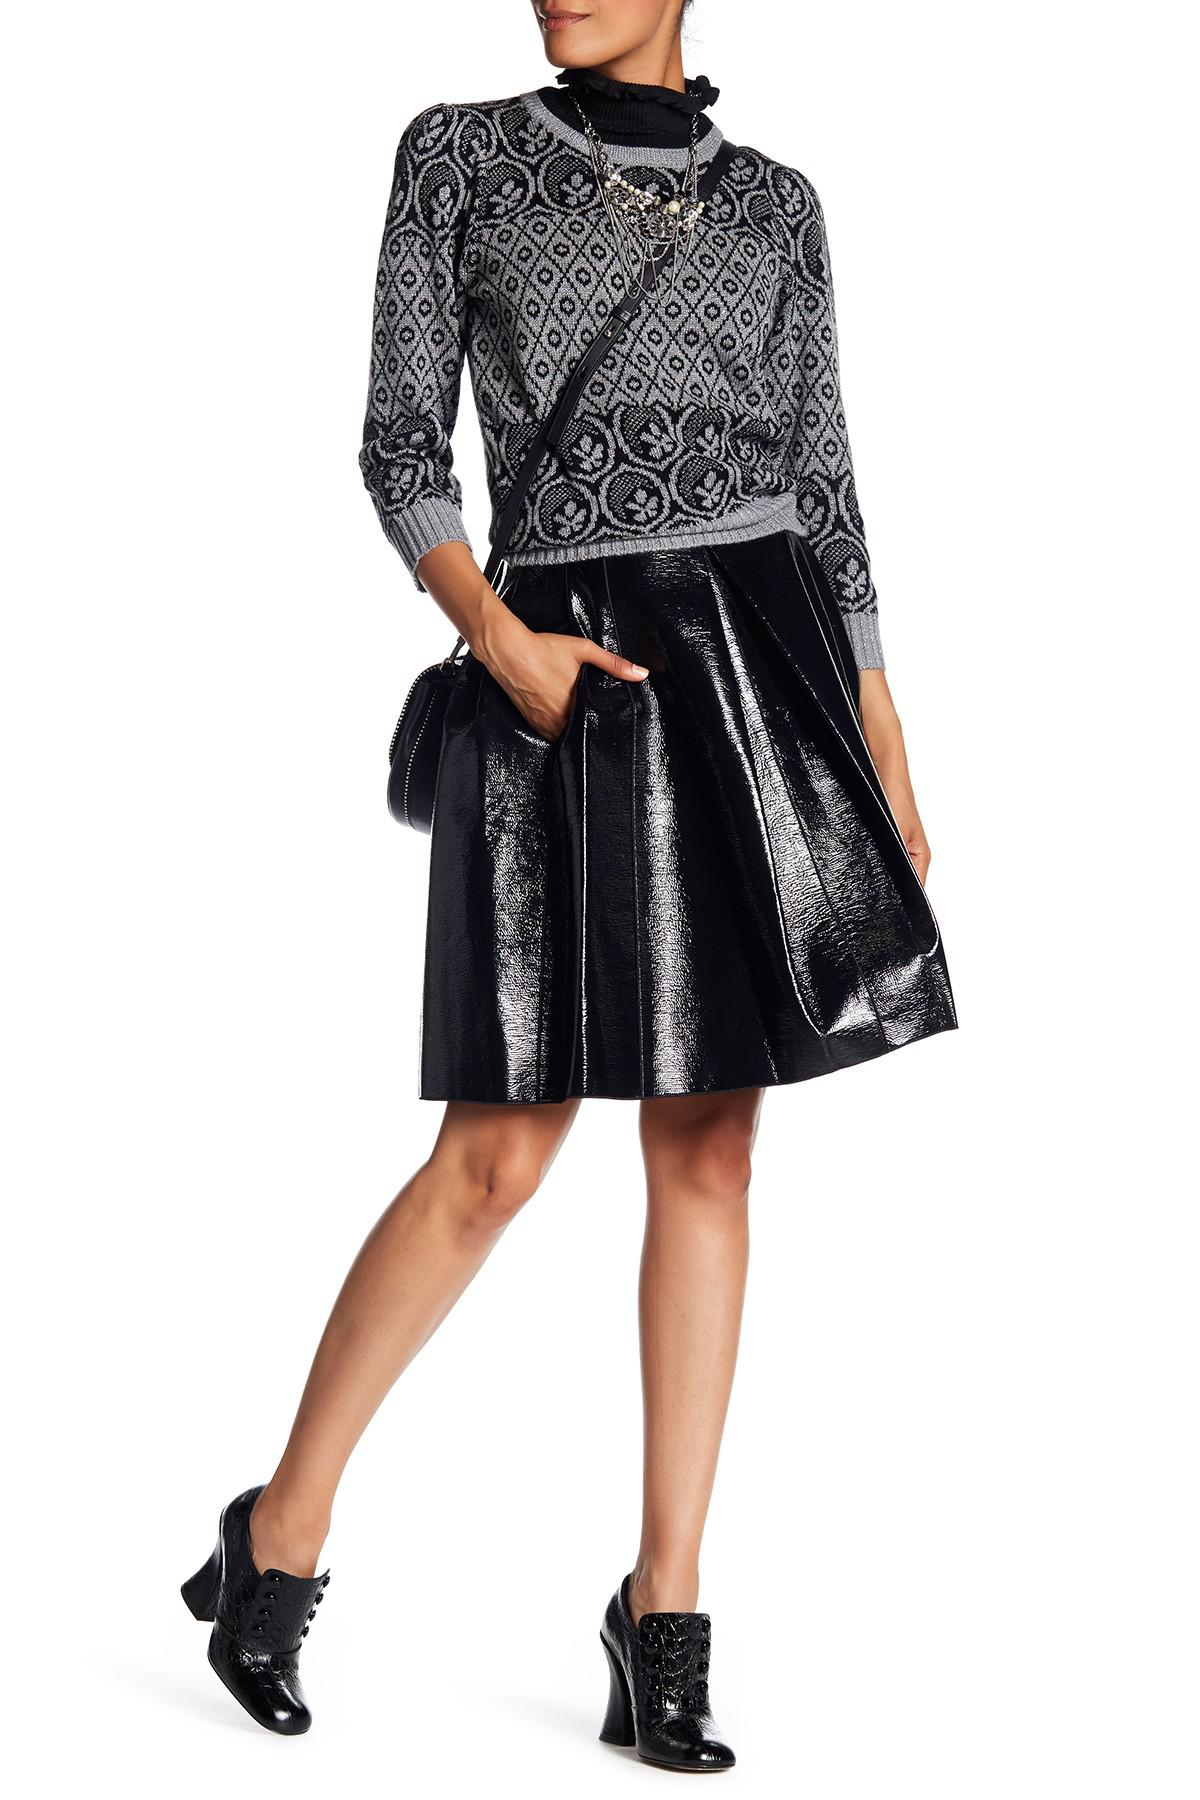 e6edd56820 Gallery. Previously sold at: Nordstrom Rack · Women's Bow Skirt ...